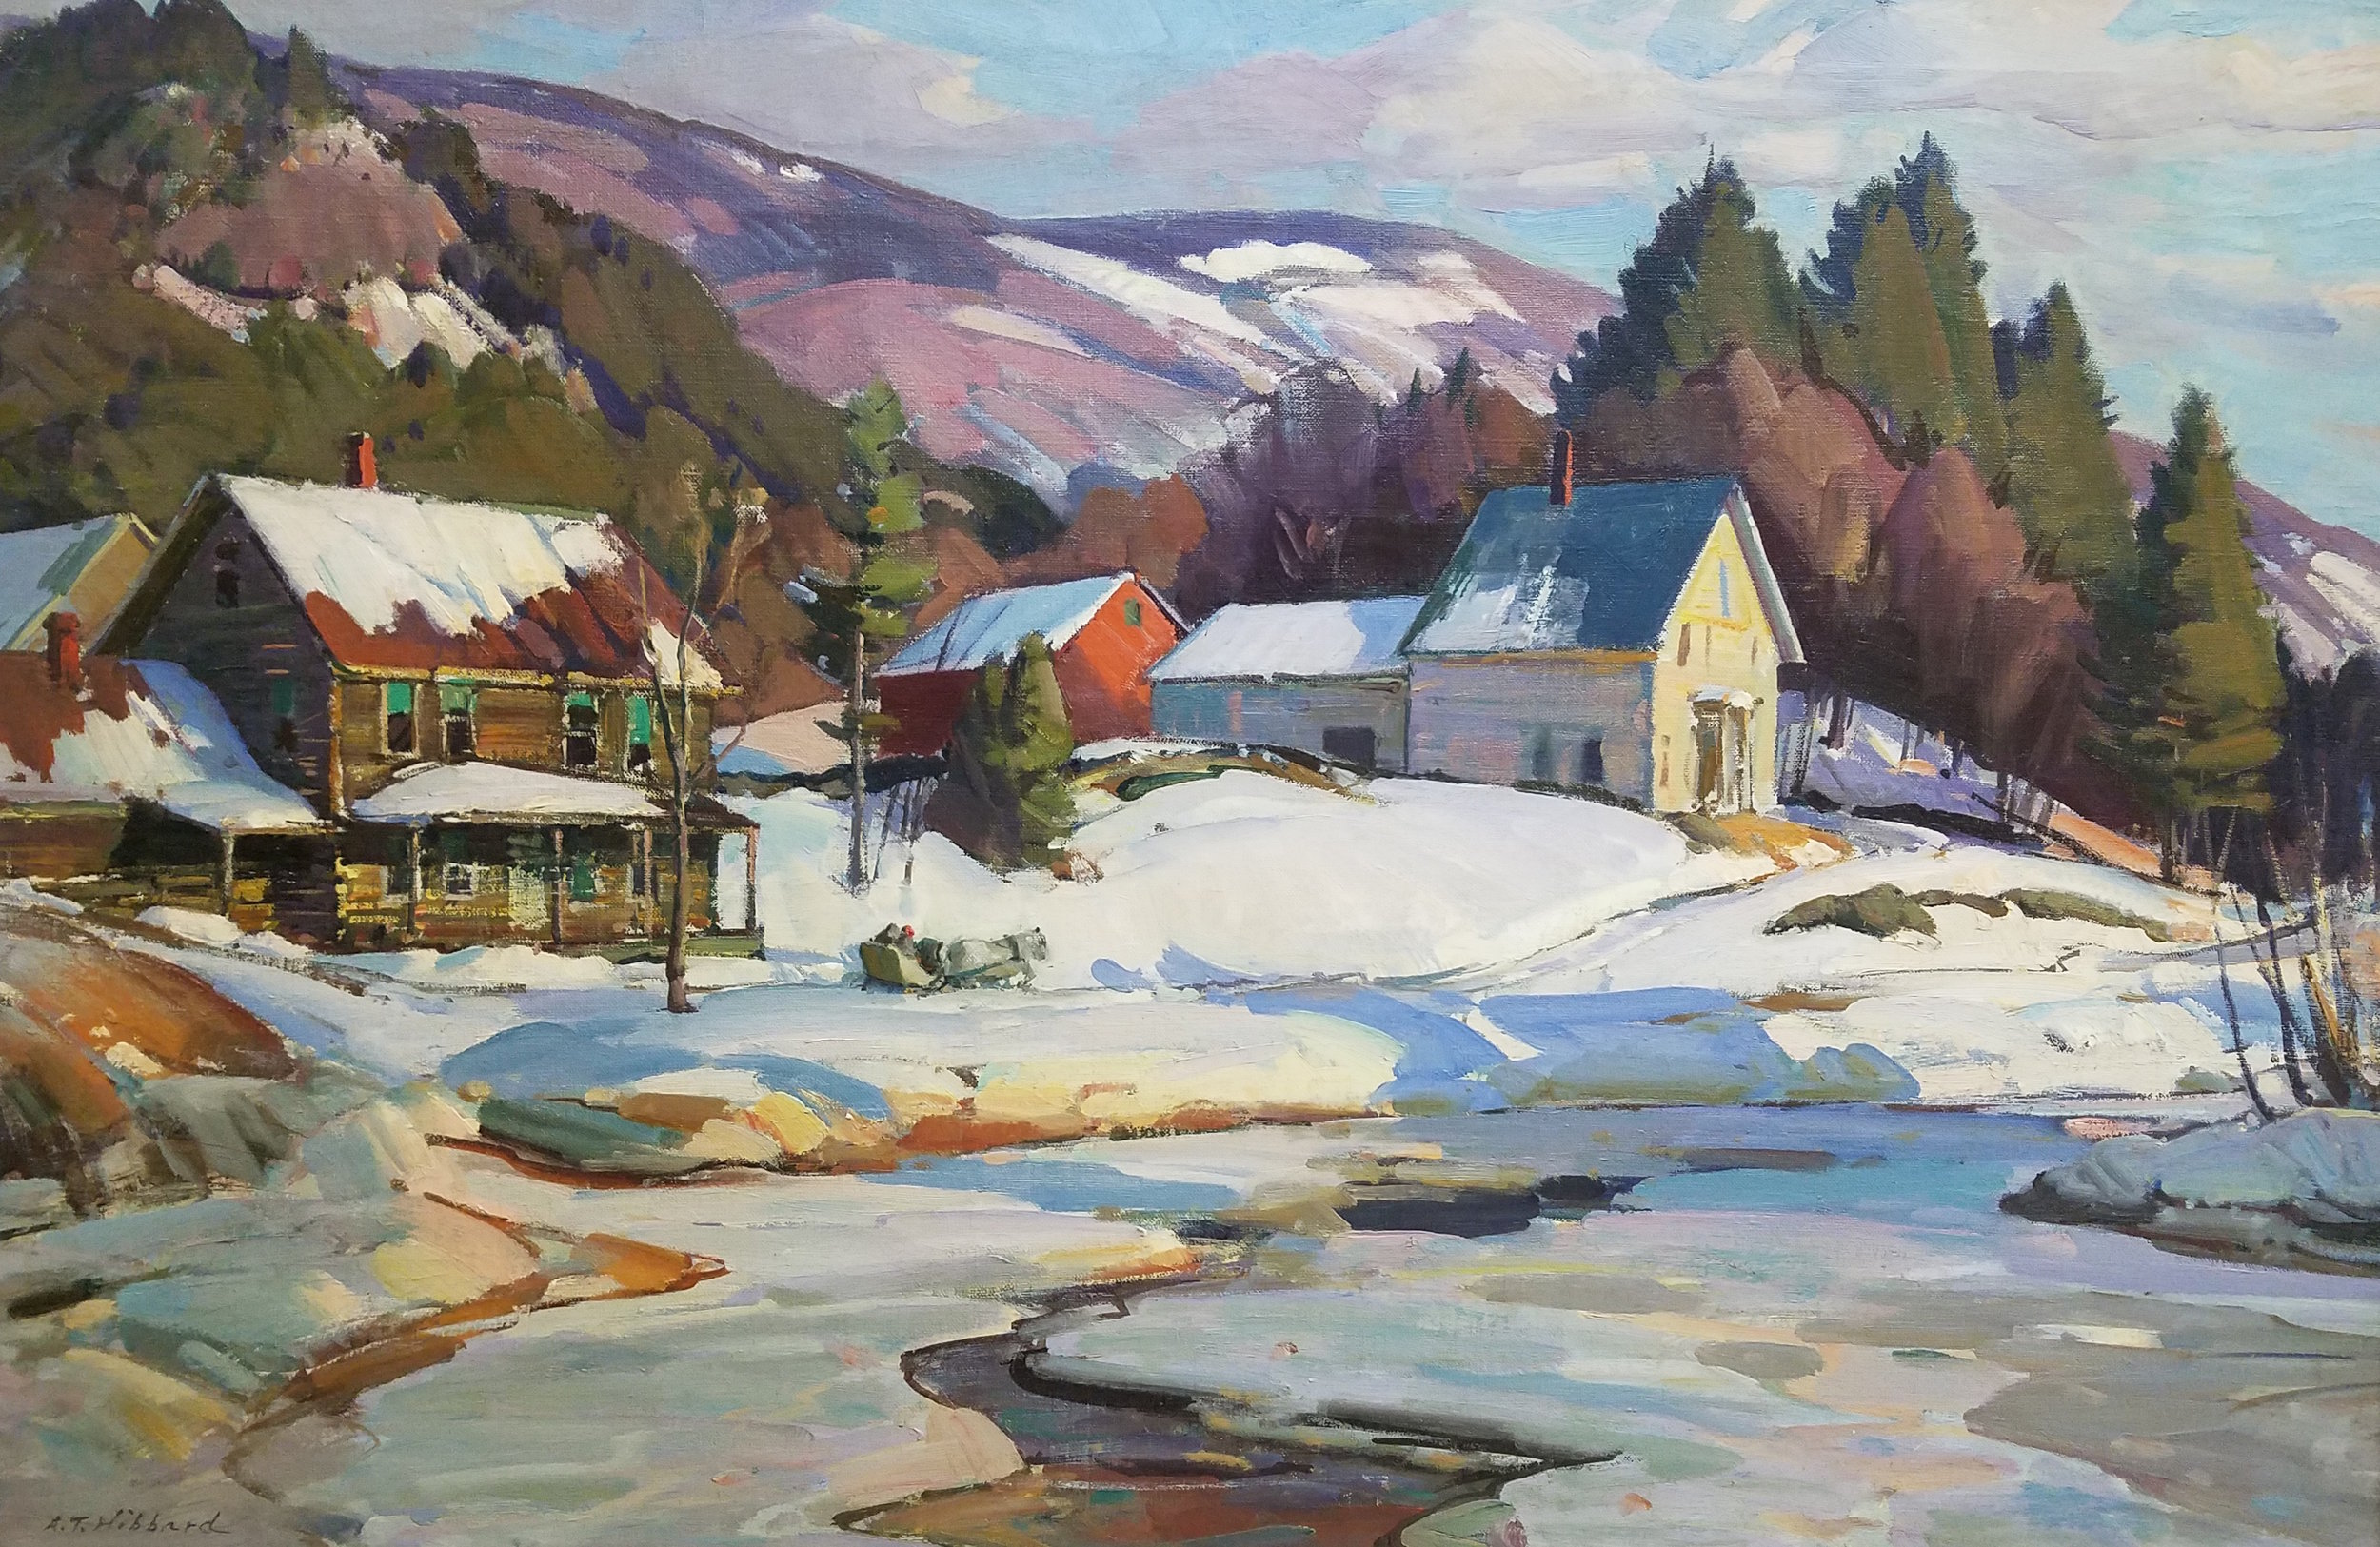 South Londonderry , VT, Aldro T. Hibbard ,  Founding Member of the Rockport Art Associciation & Musuem